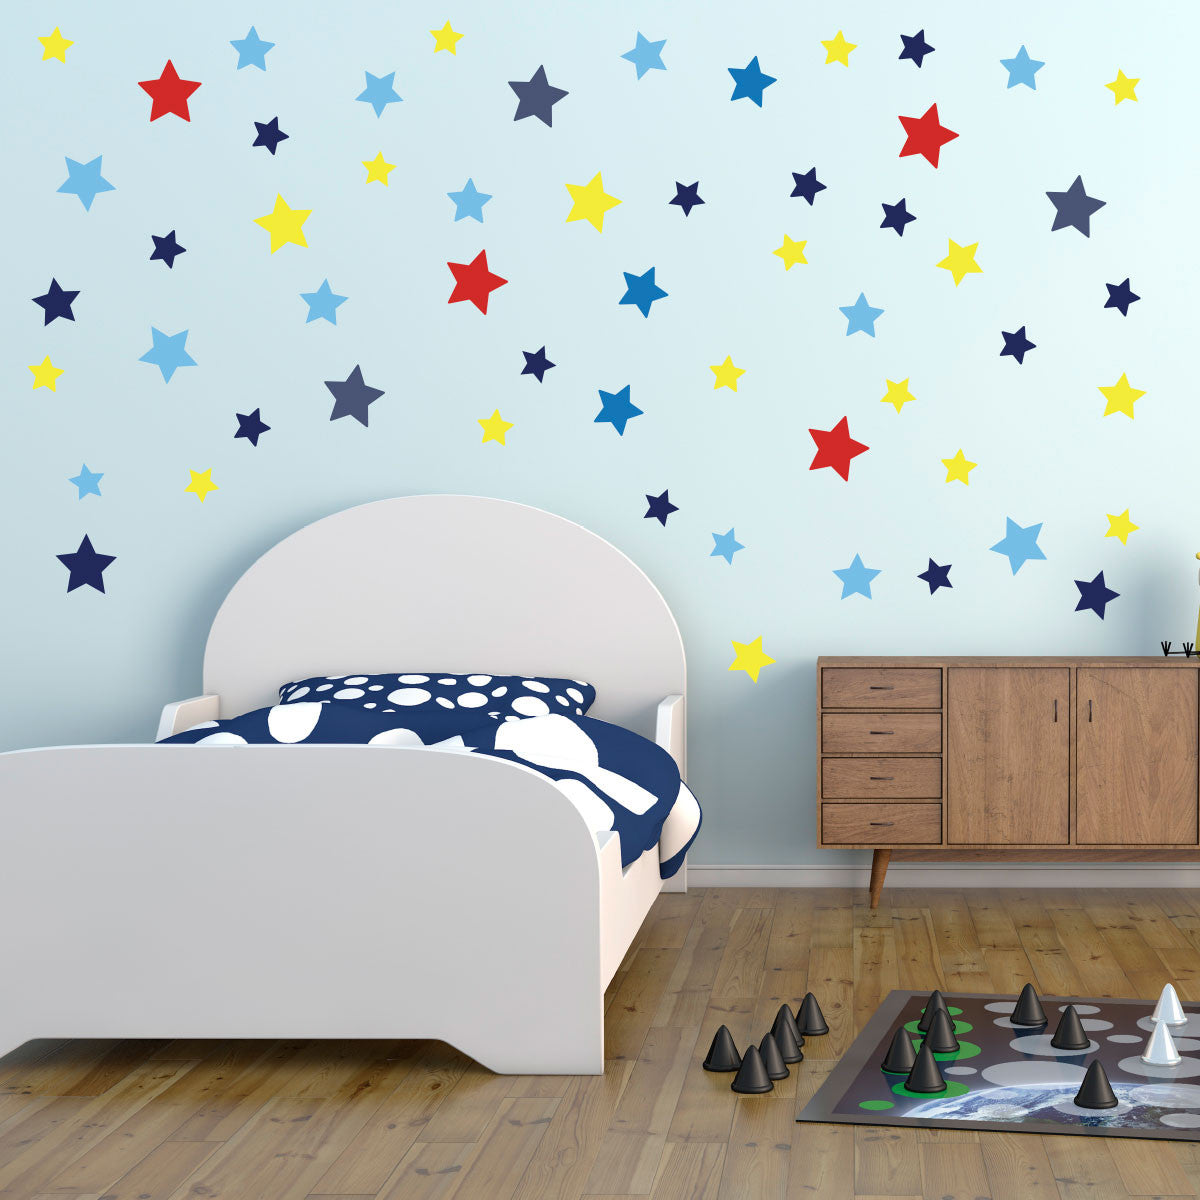 Star Wall Stickers Pack